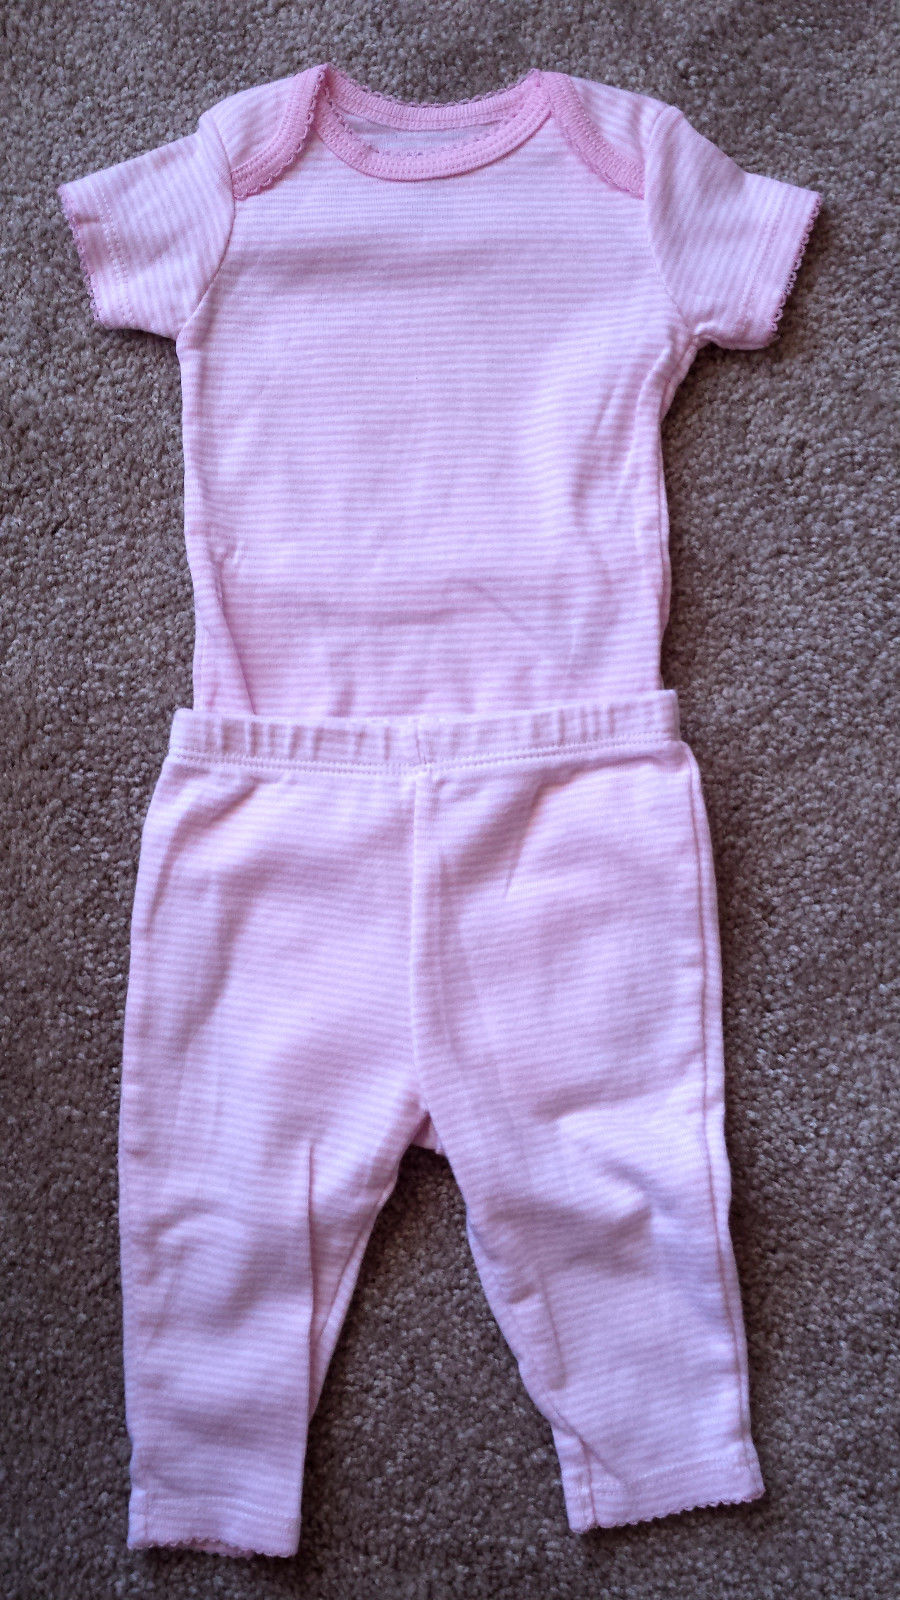 Girl's Size 0-3 M Months Two Piece Carter's Pink/ White Striped Top & Pants Set